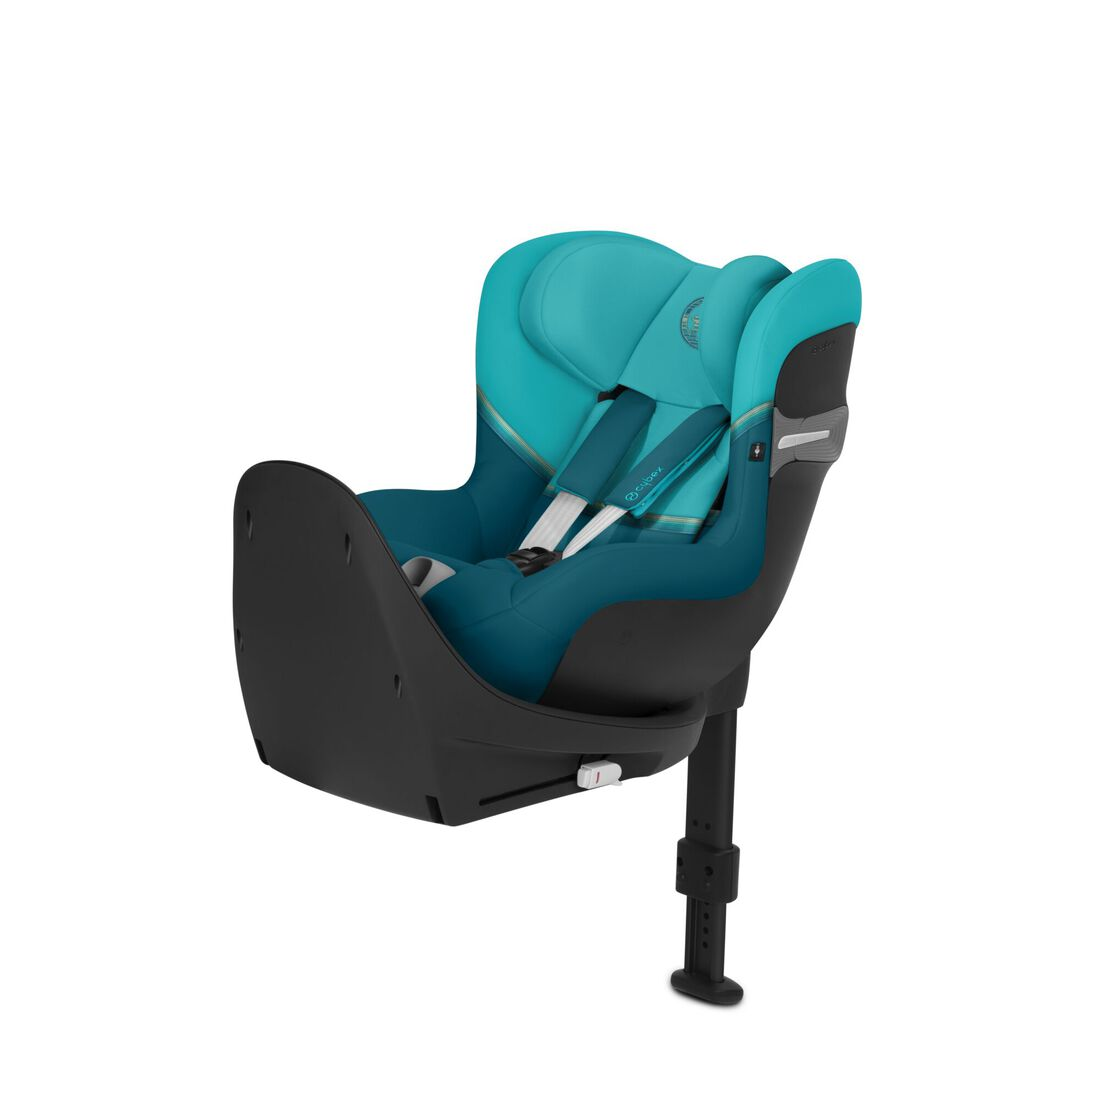 CYBEX Sirona SX2 i-Size - River Blue in River Blue large image number 1